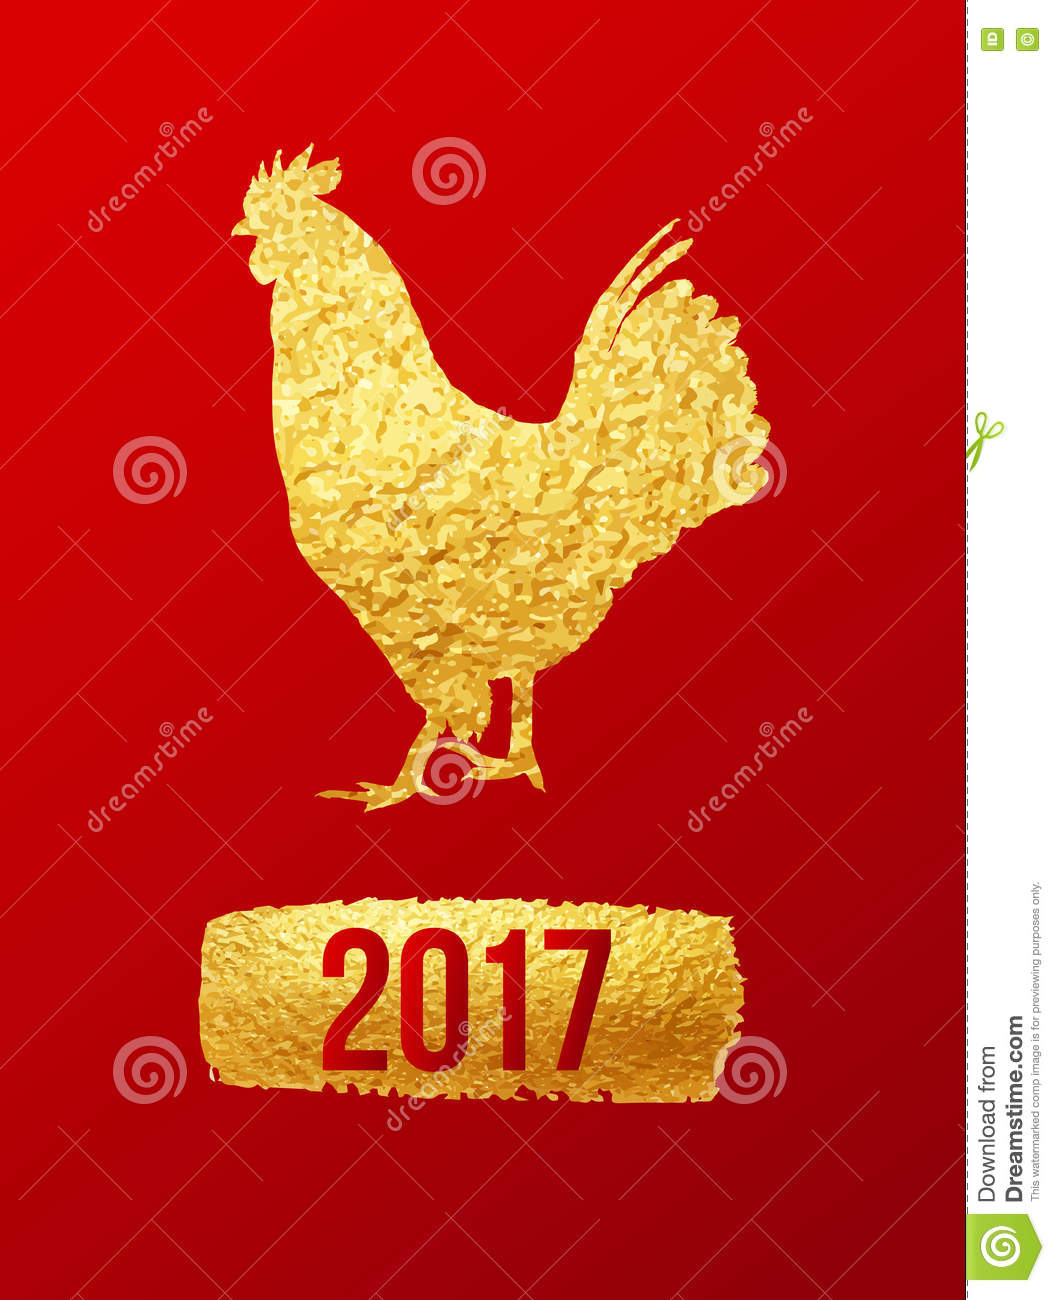 happy 2017 chinese new year card vector poster of a golden rooster isolated on red background design template for prints covers royalty free stock image